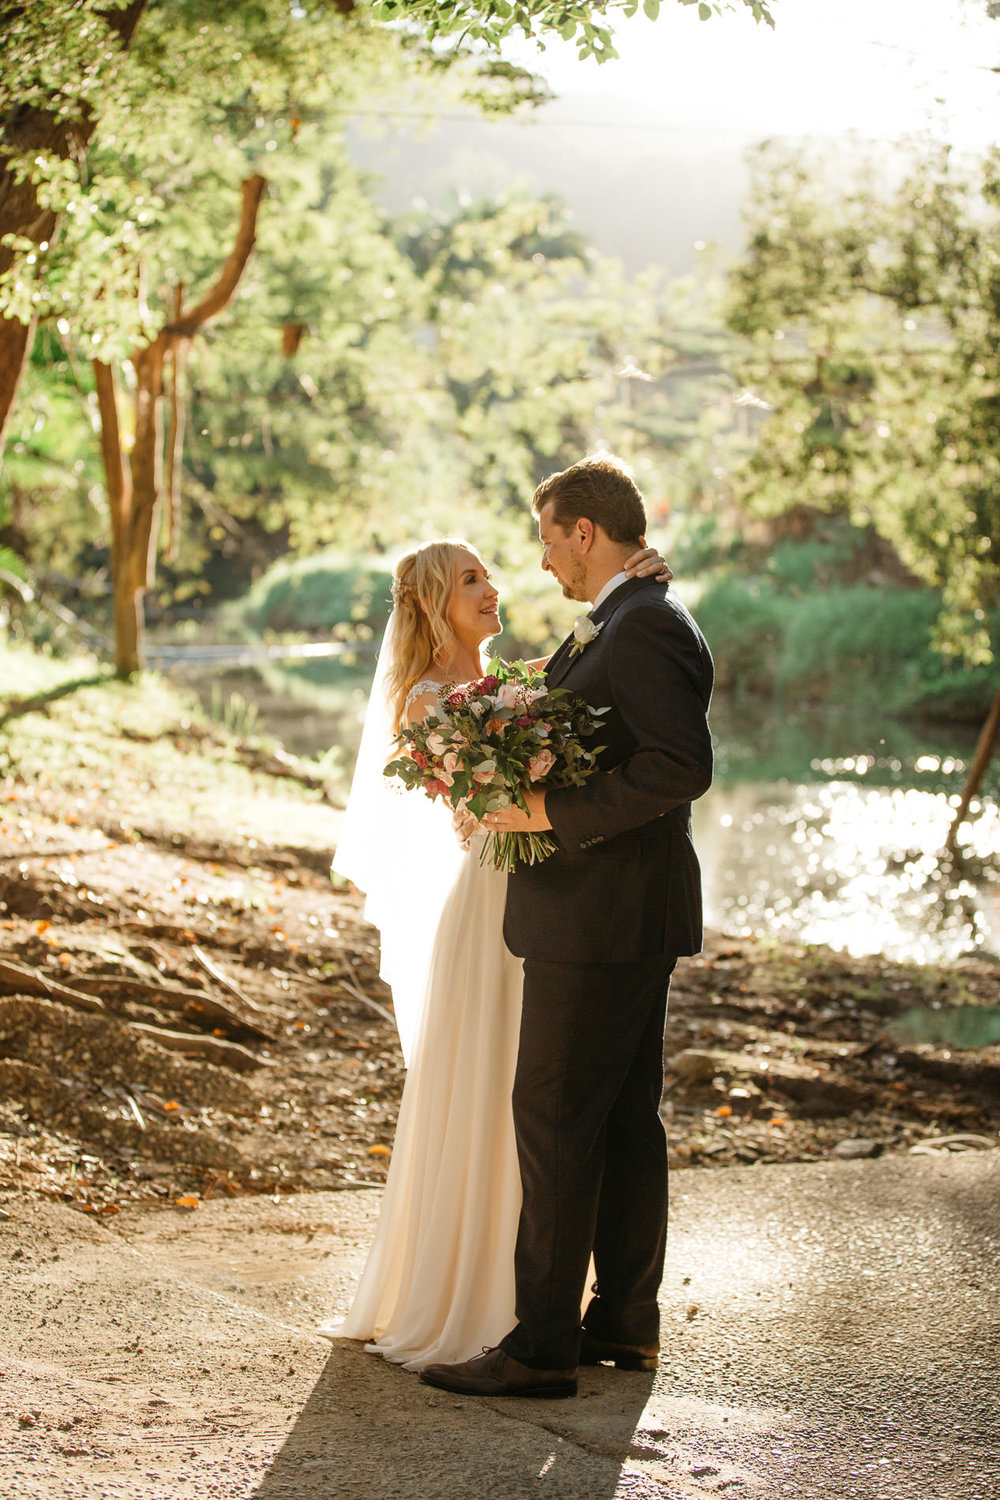 True North Photography_Boomerang Farm_Stacey and Isaac_Gold Coast Wedding_Barm Wedding_Hinterland Wedding-136.jpg